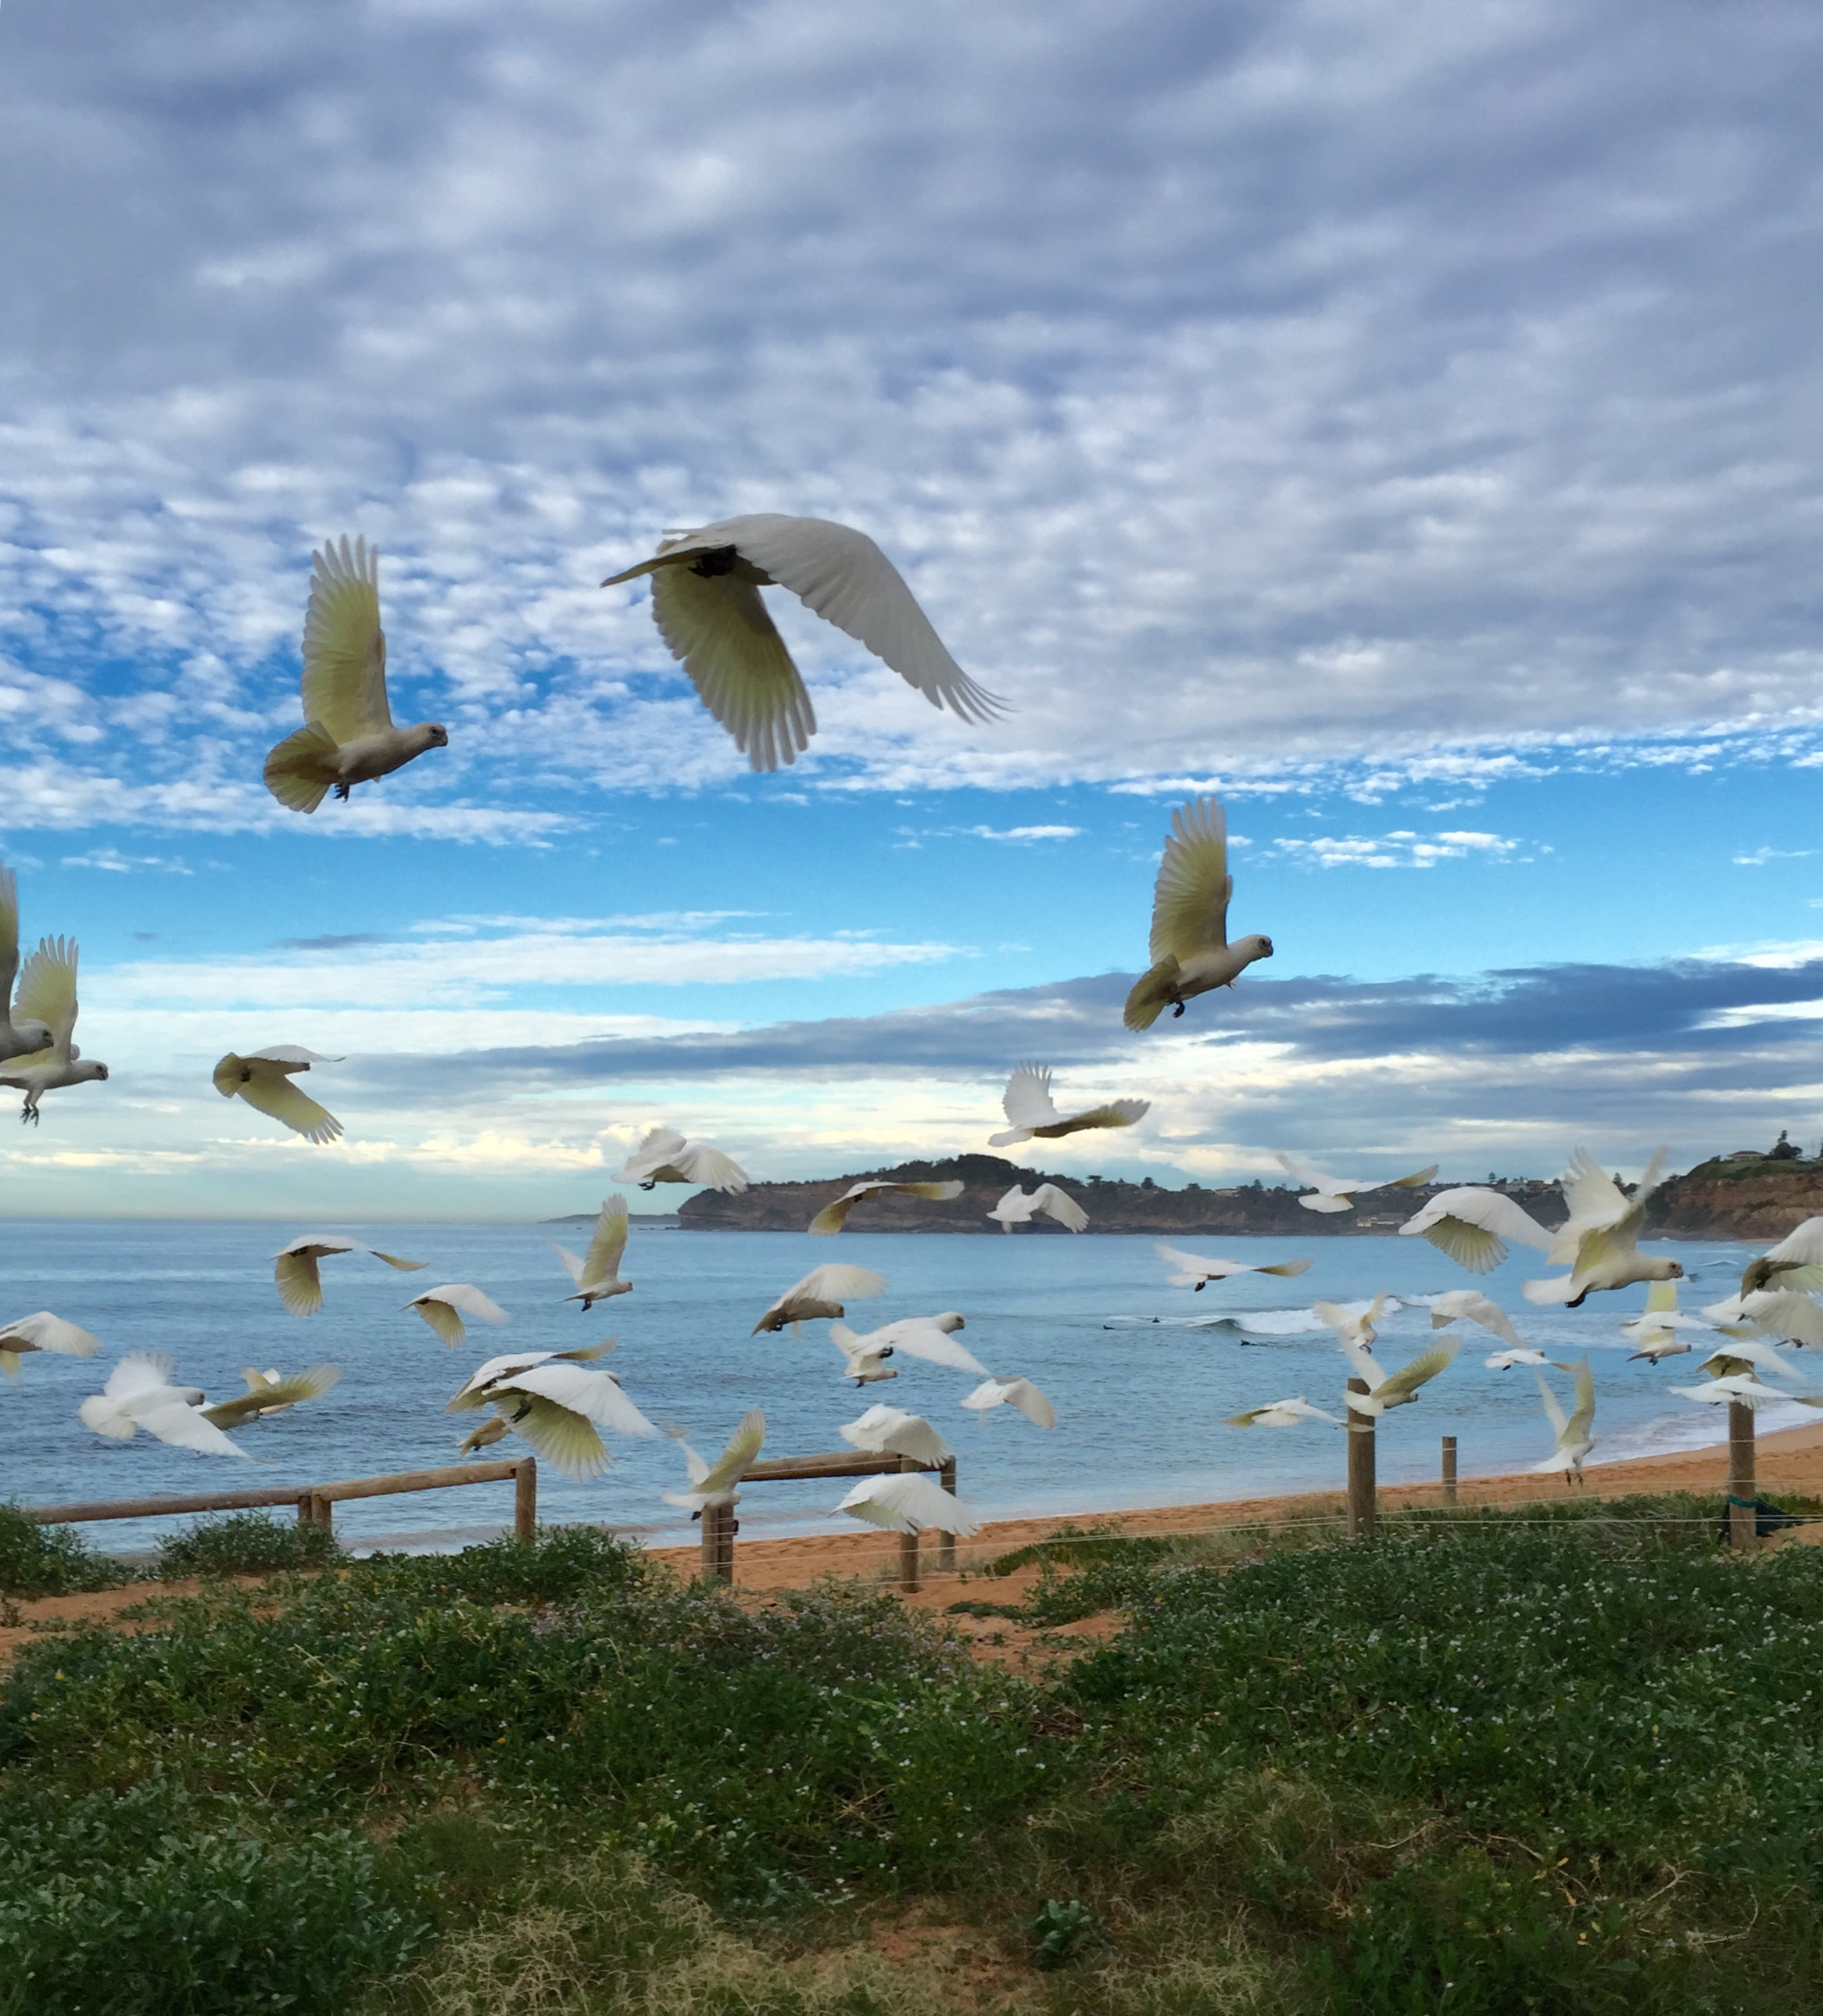 Seagulls flying above Mona Vale beach